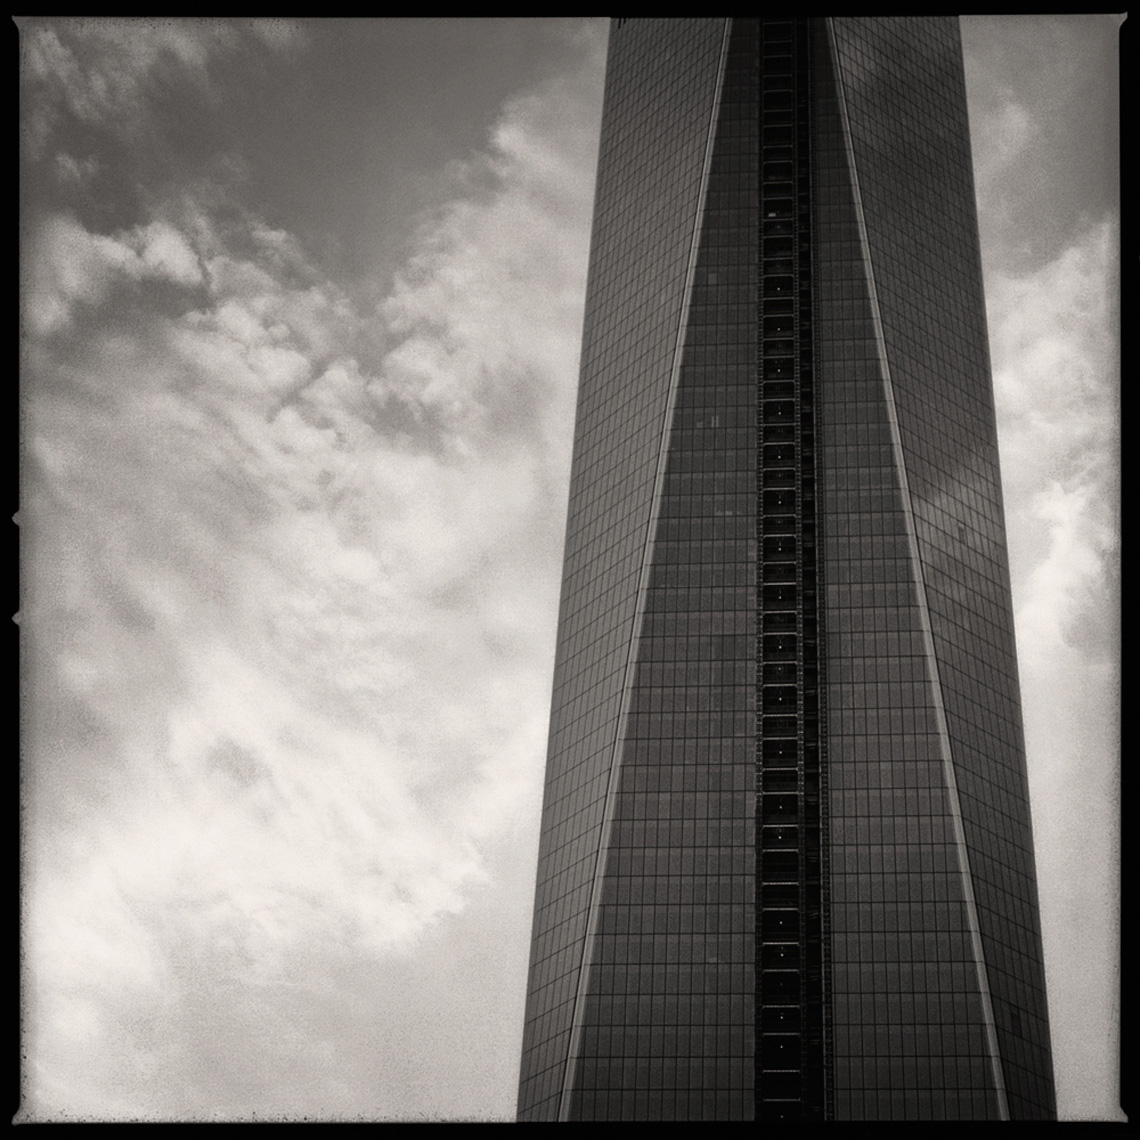 Sean Perry Photographs • One World Trade Center, from the series Monolith